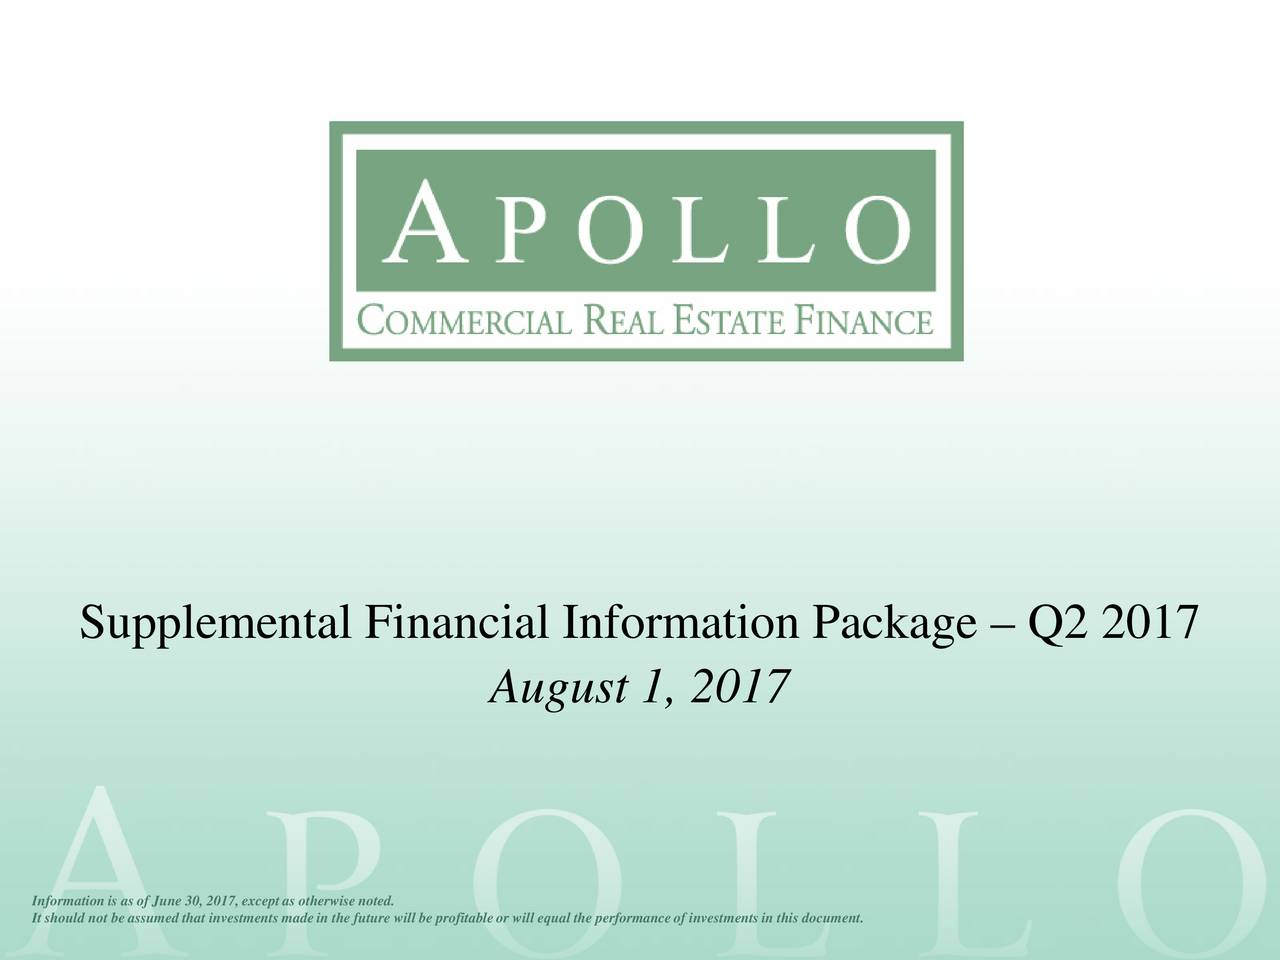 August 1, 2017 Information is asof June 30, 2017, except as otherwise noted. It should not be assumed that investments madein the future will be profitable or will equal the performanceof investments in this document.